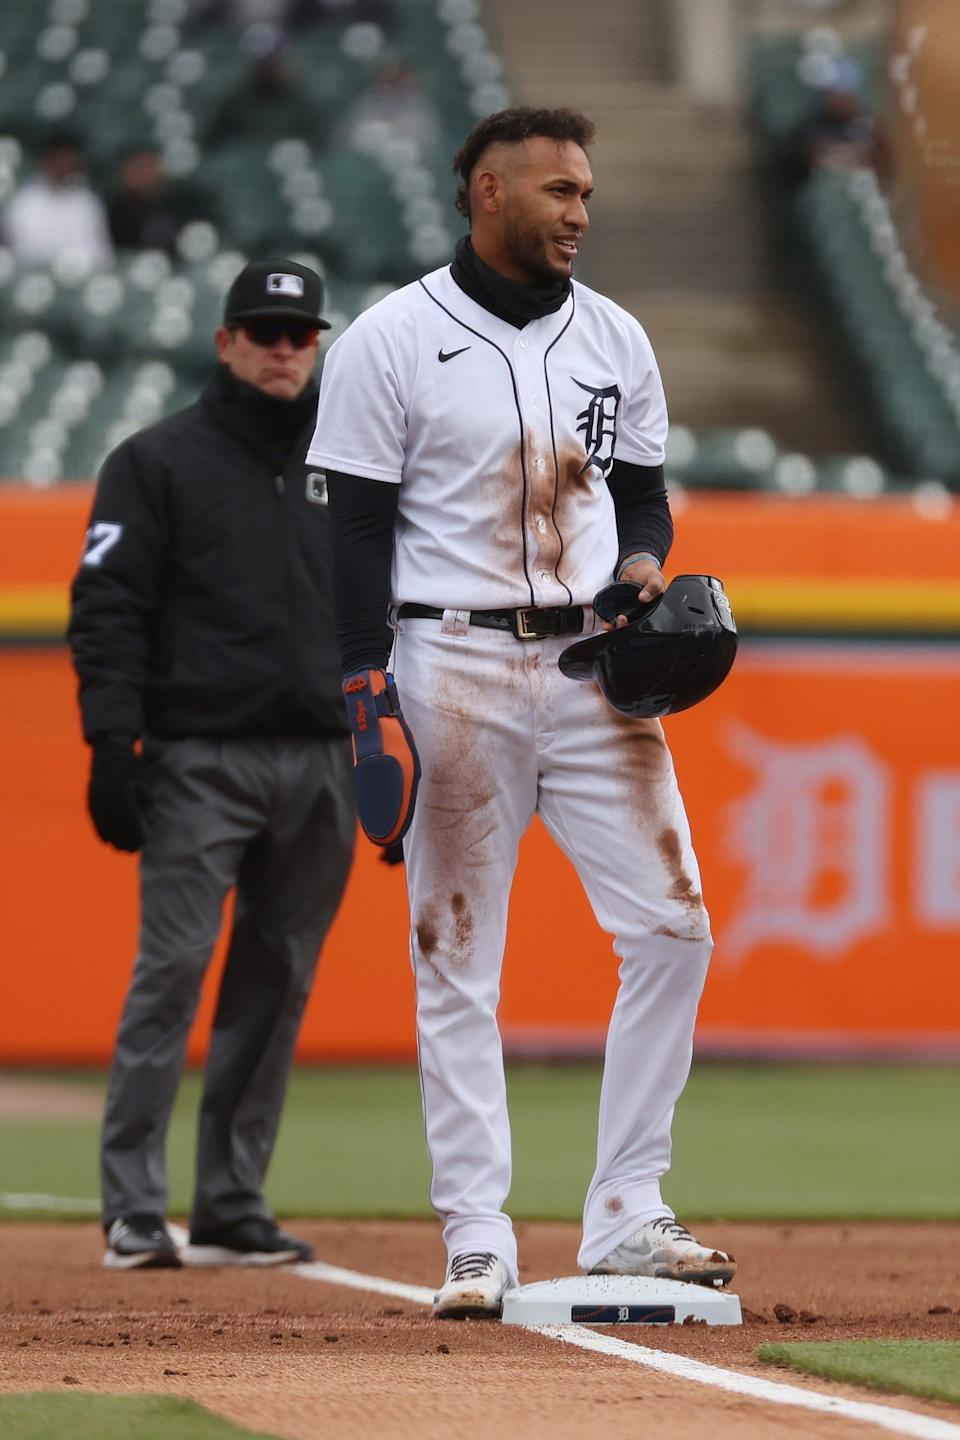 Victor Reyes of the Detroit Tigers after stealing third base against the Pittsburgh Pirates at Comerica Park during game one of a doubleheader on April 21, 2021 in Detroit, Michigan.